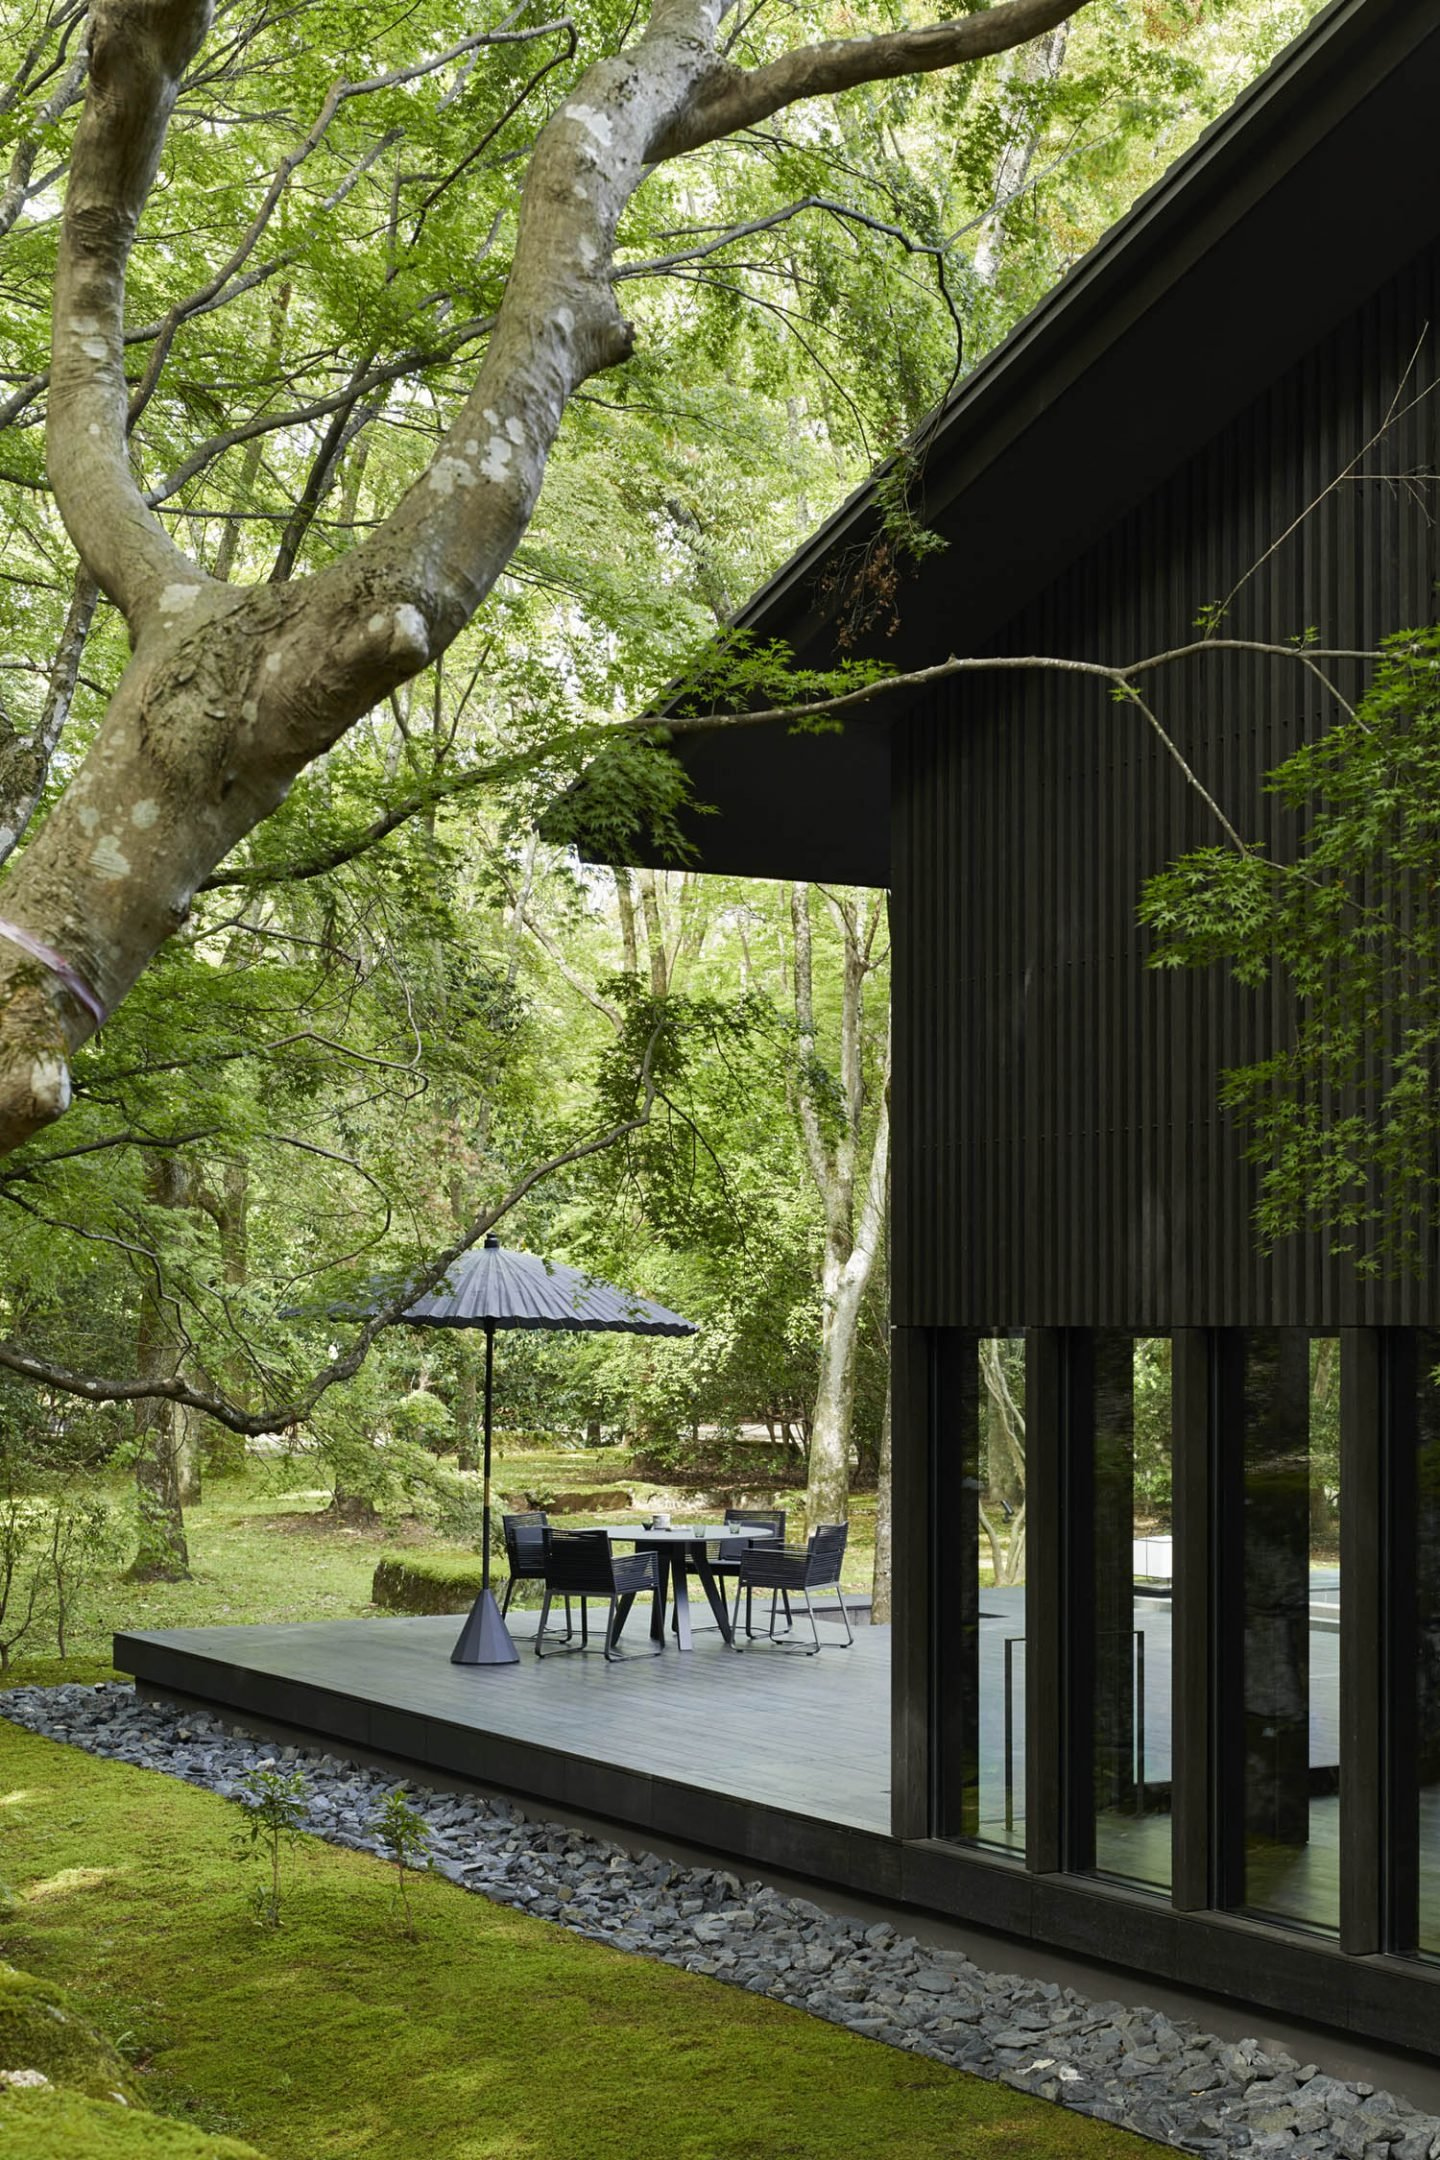 Aman Kyoto, Japan - The Living Pavilion by Aman Exterior.tif